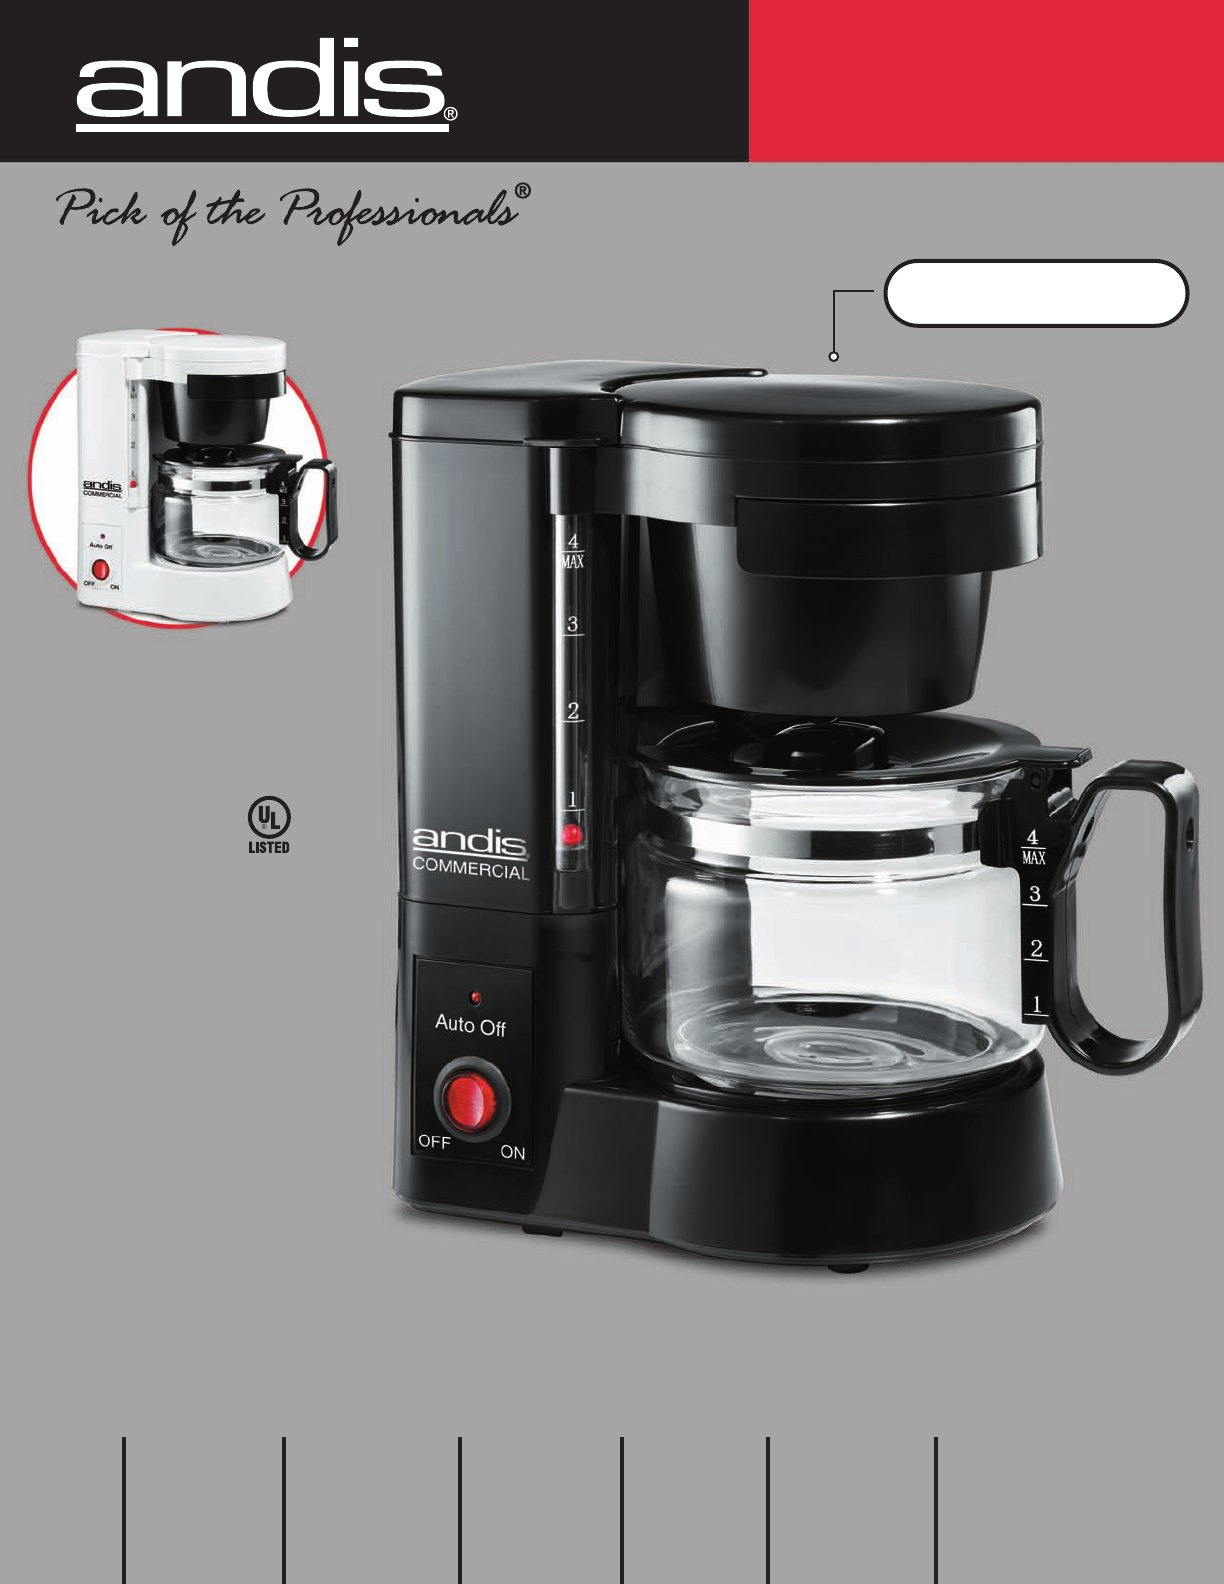 Andis Coffee Maker How To Use : Andis Company Coffeemaker 60030 User Guide ManualsOnline.com